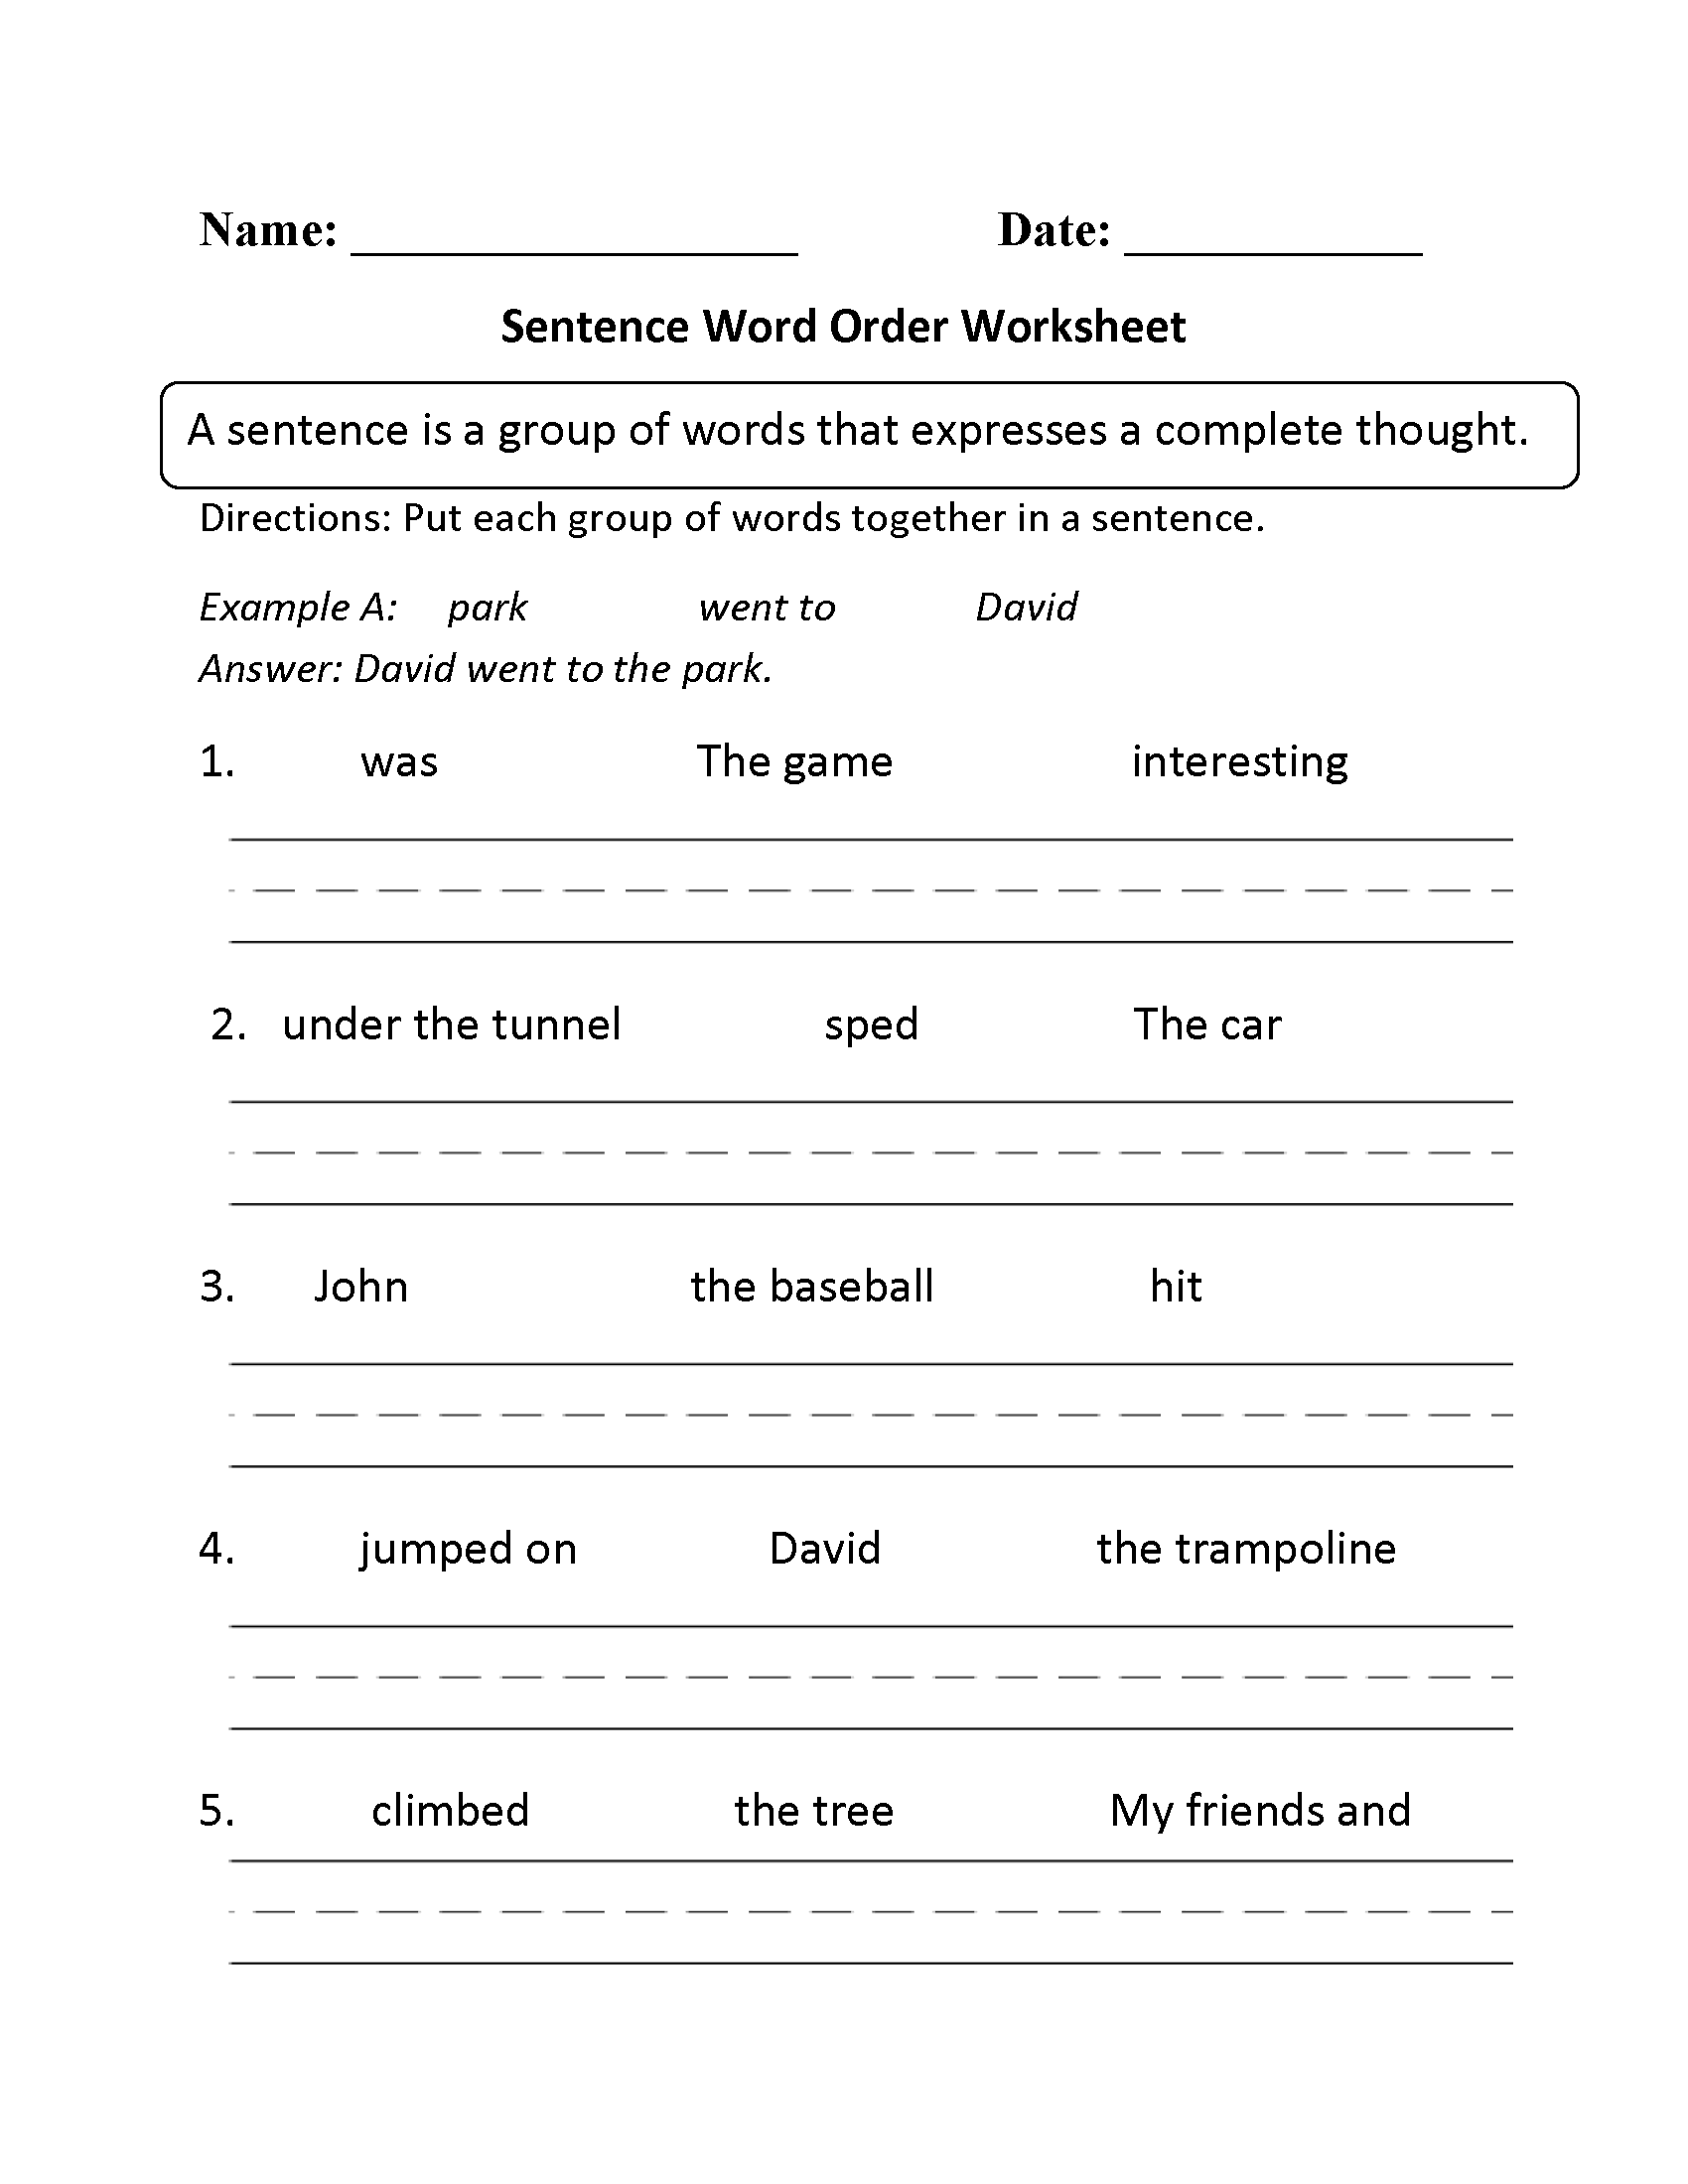 Sentence Word Order Worksheet